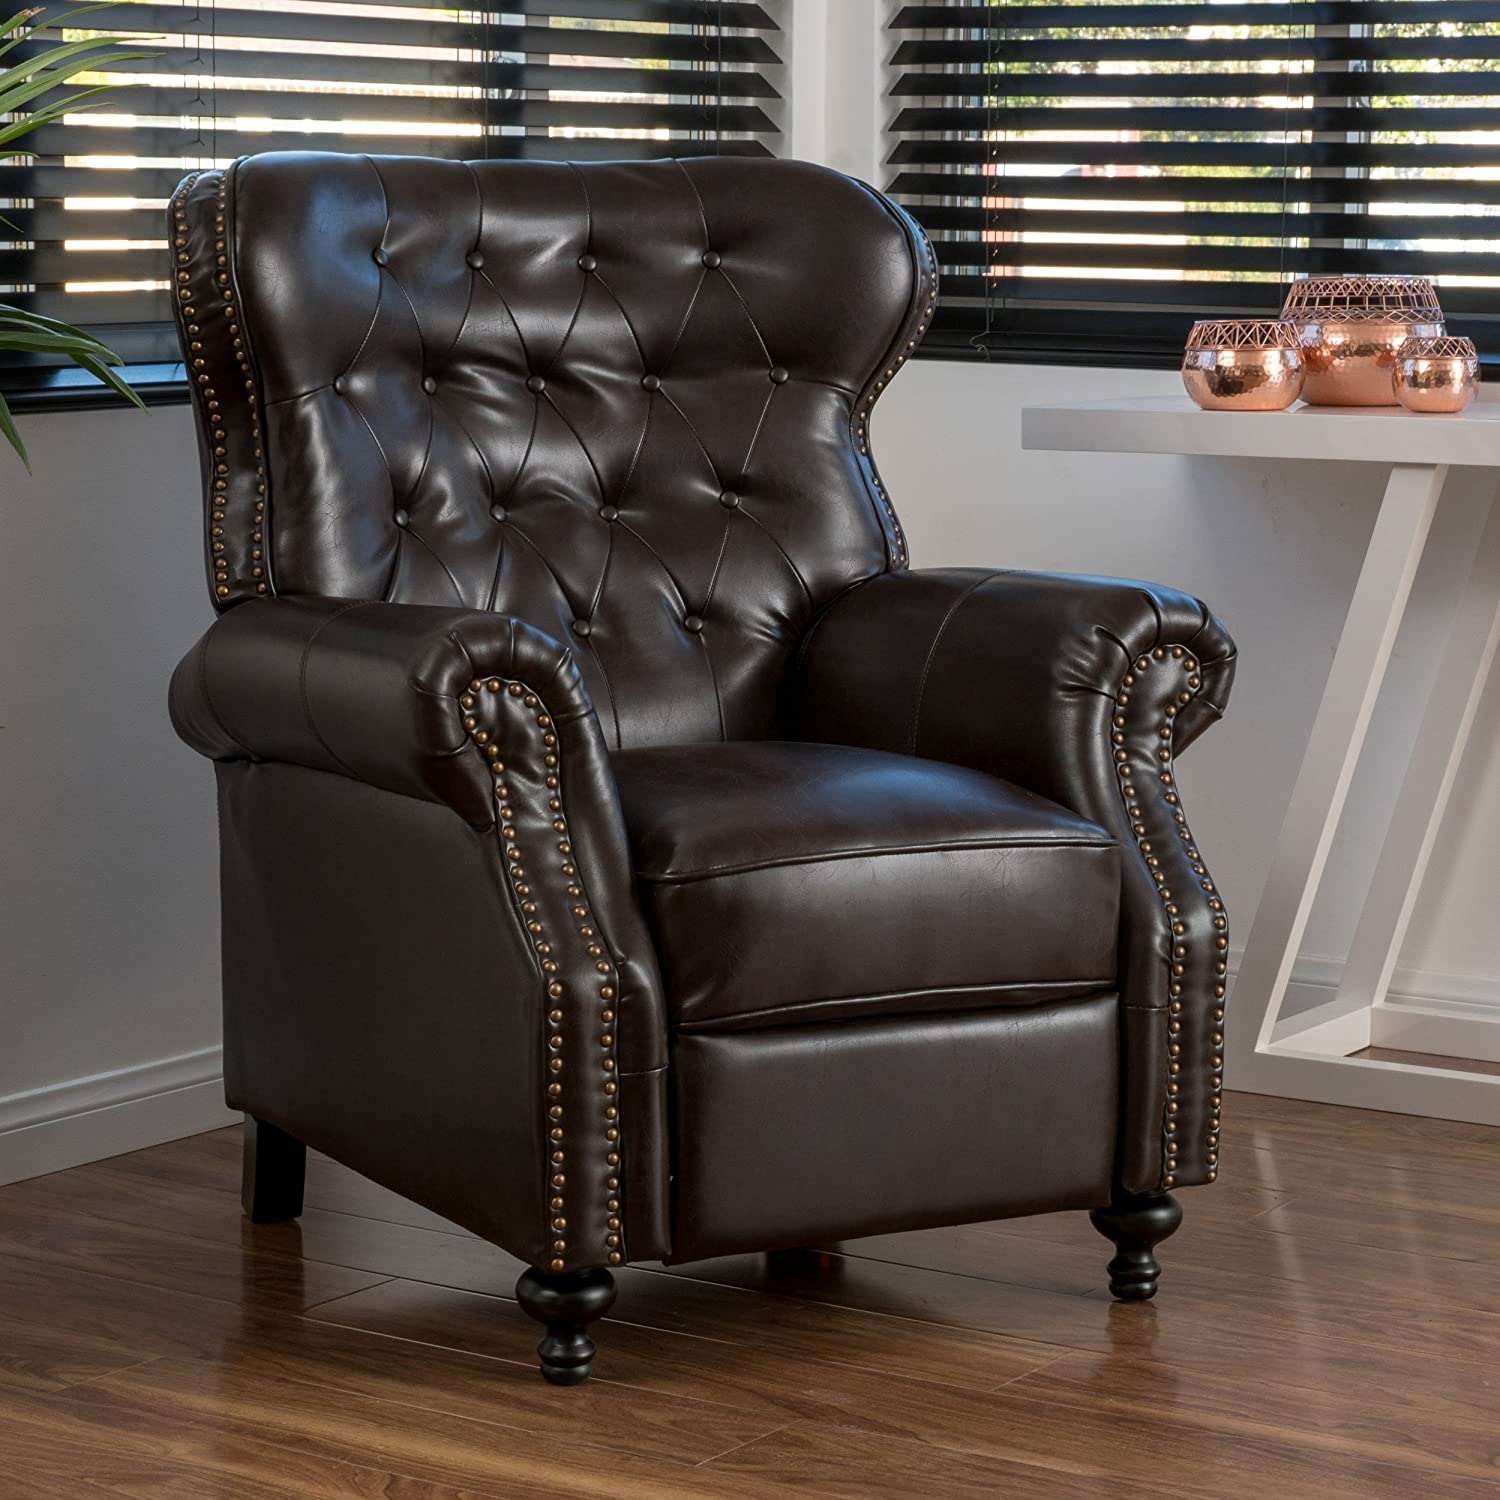 Amazon.com: Great Deal Furniture 296610 Waldo Brown Leather Recliner Club  Chair: Home U0026 Kitchen